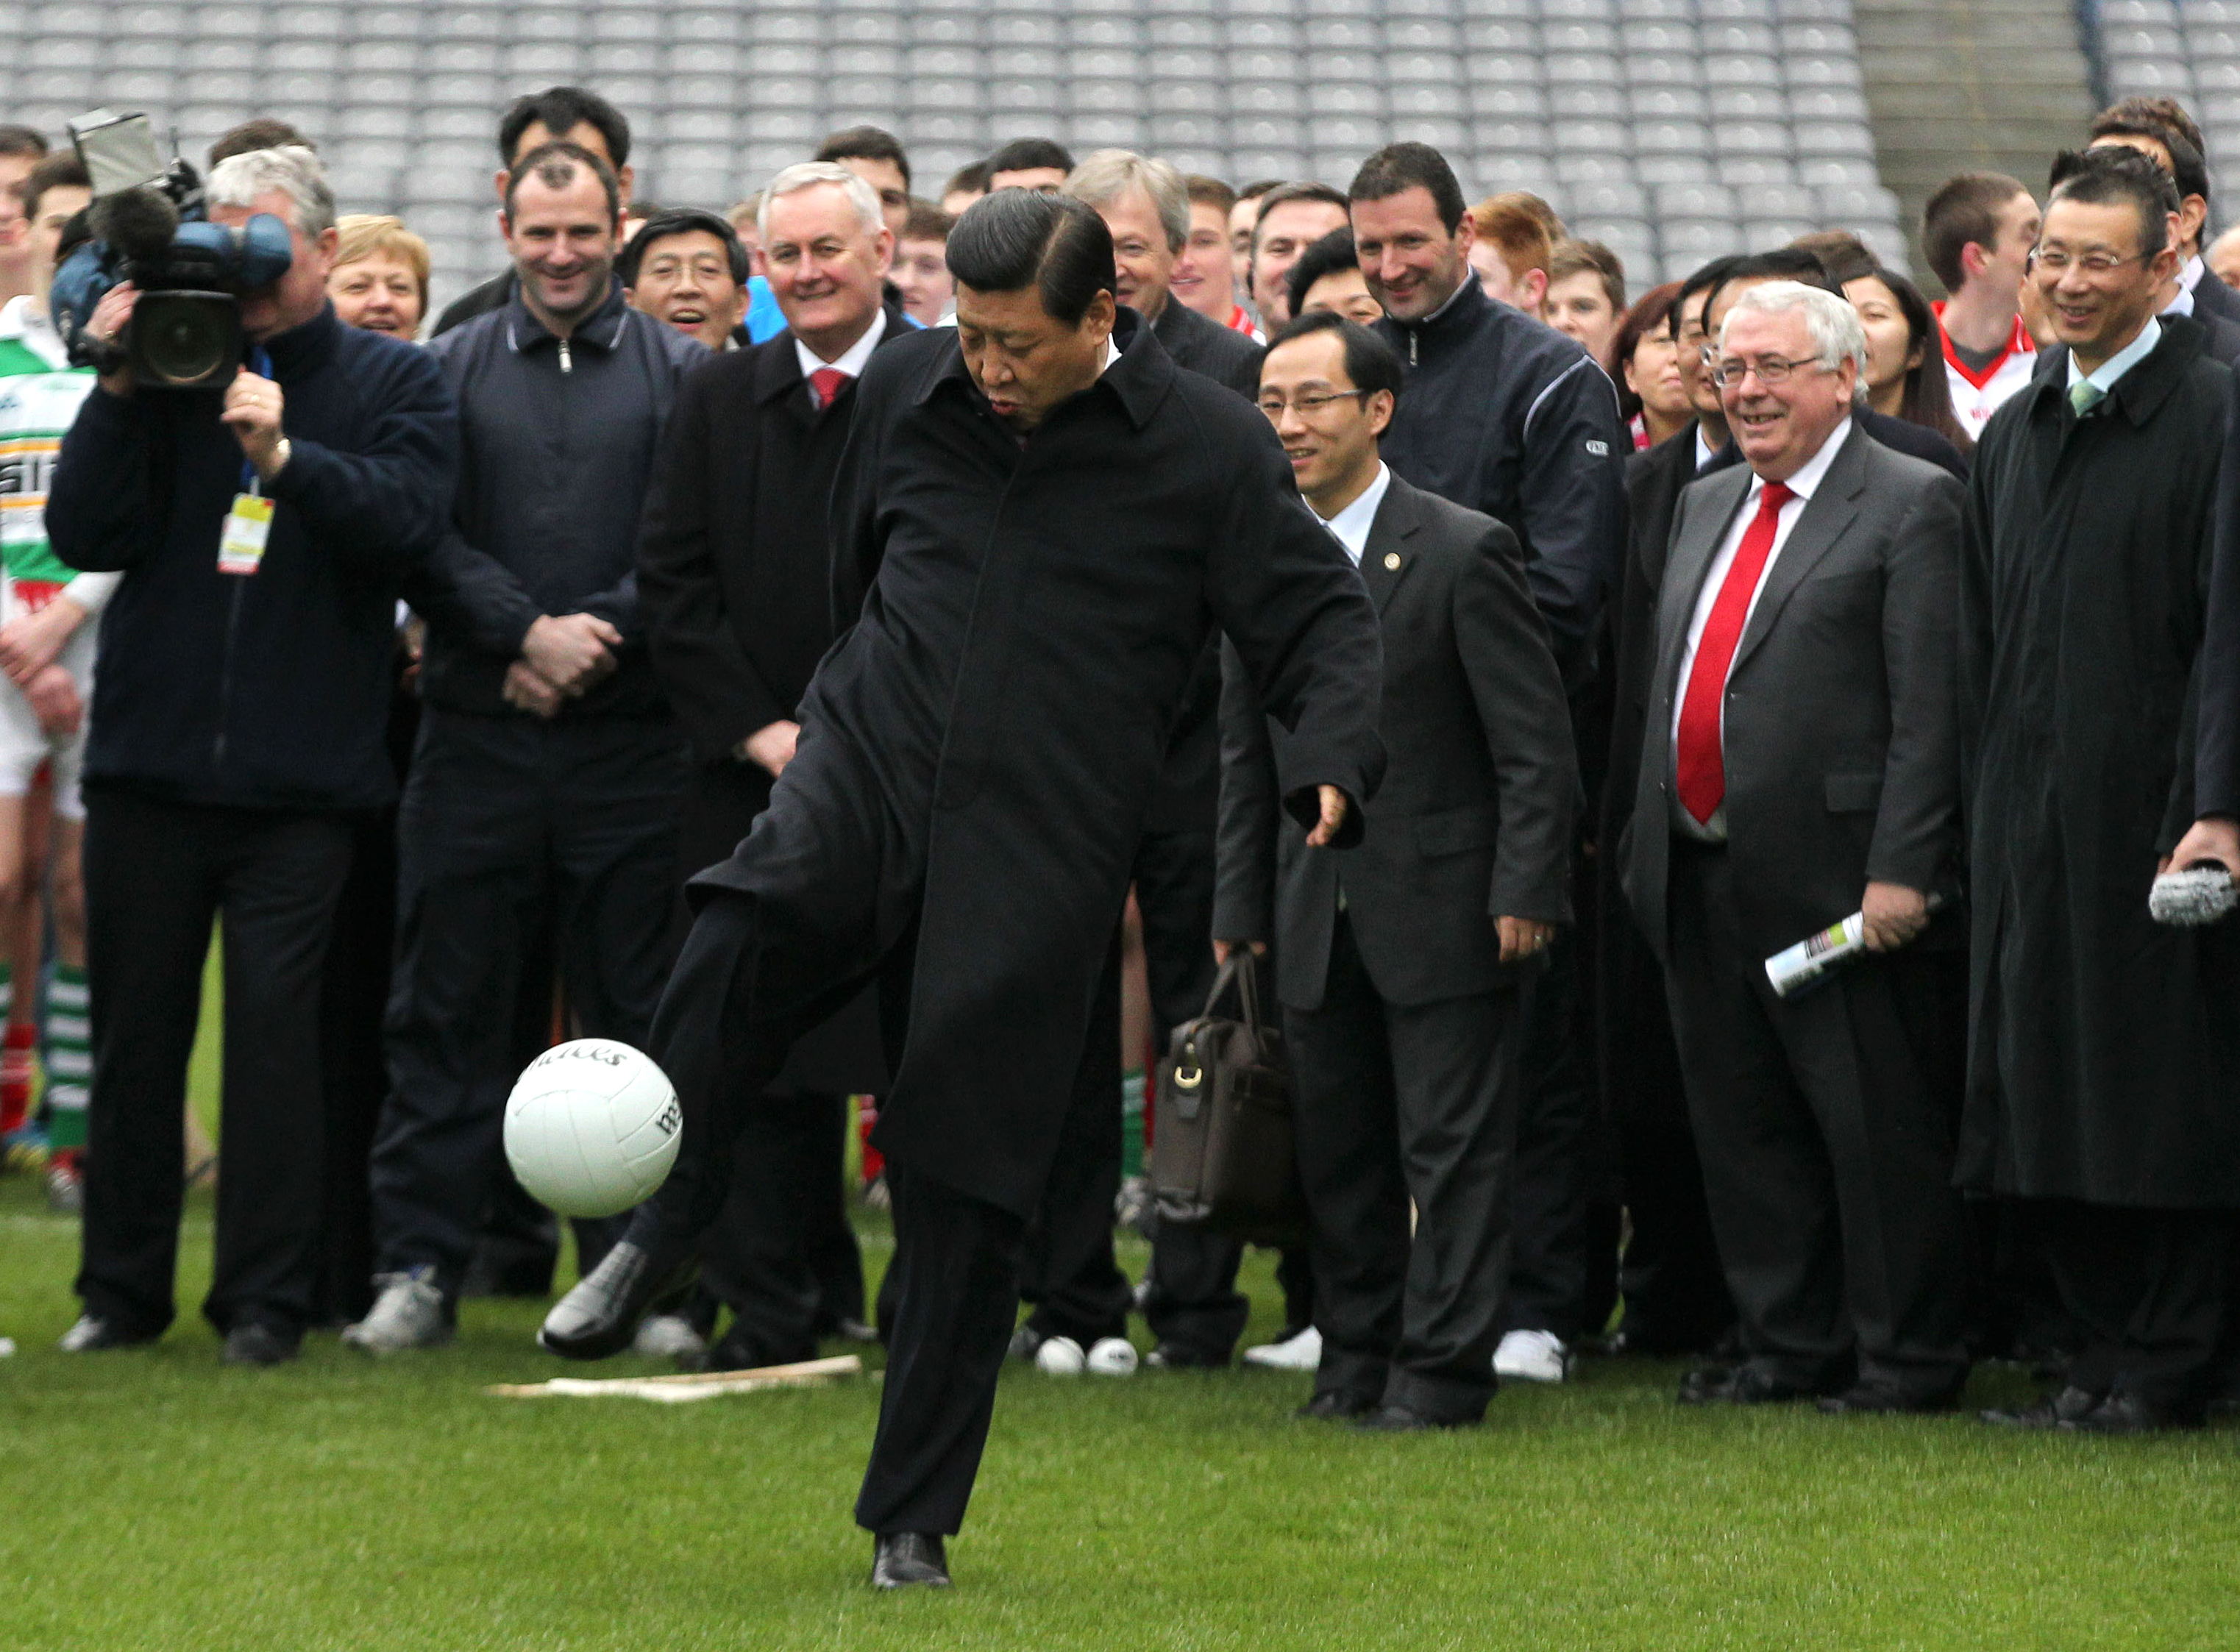 China pouring money into football to win World Cup within next 20 years